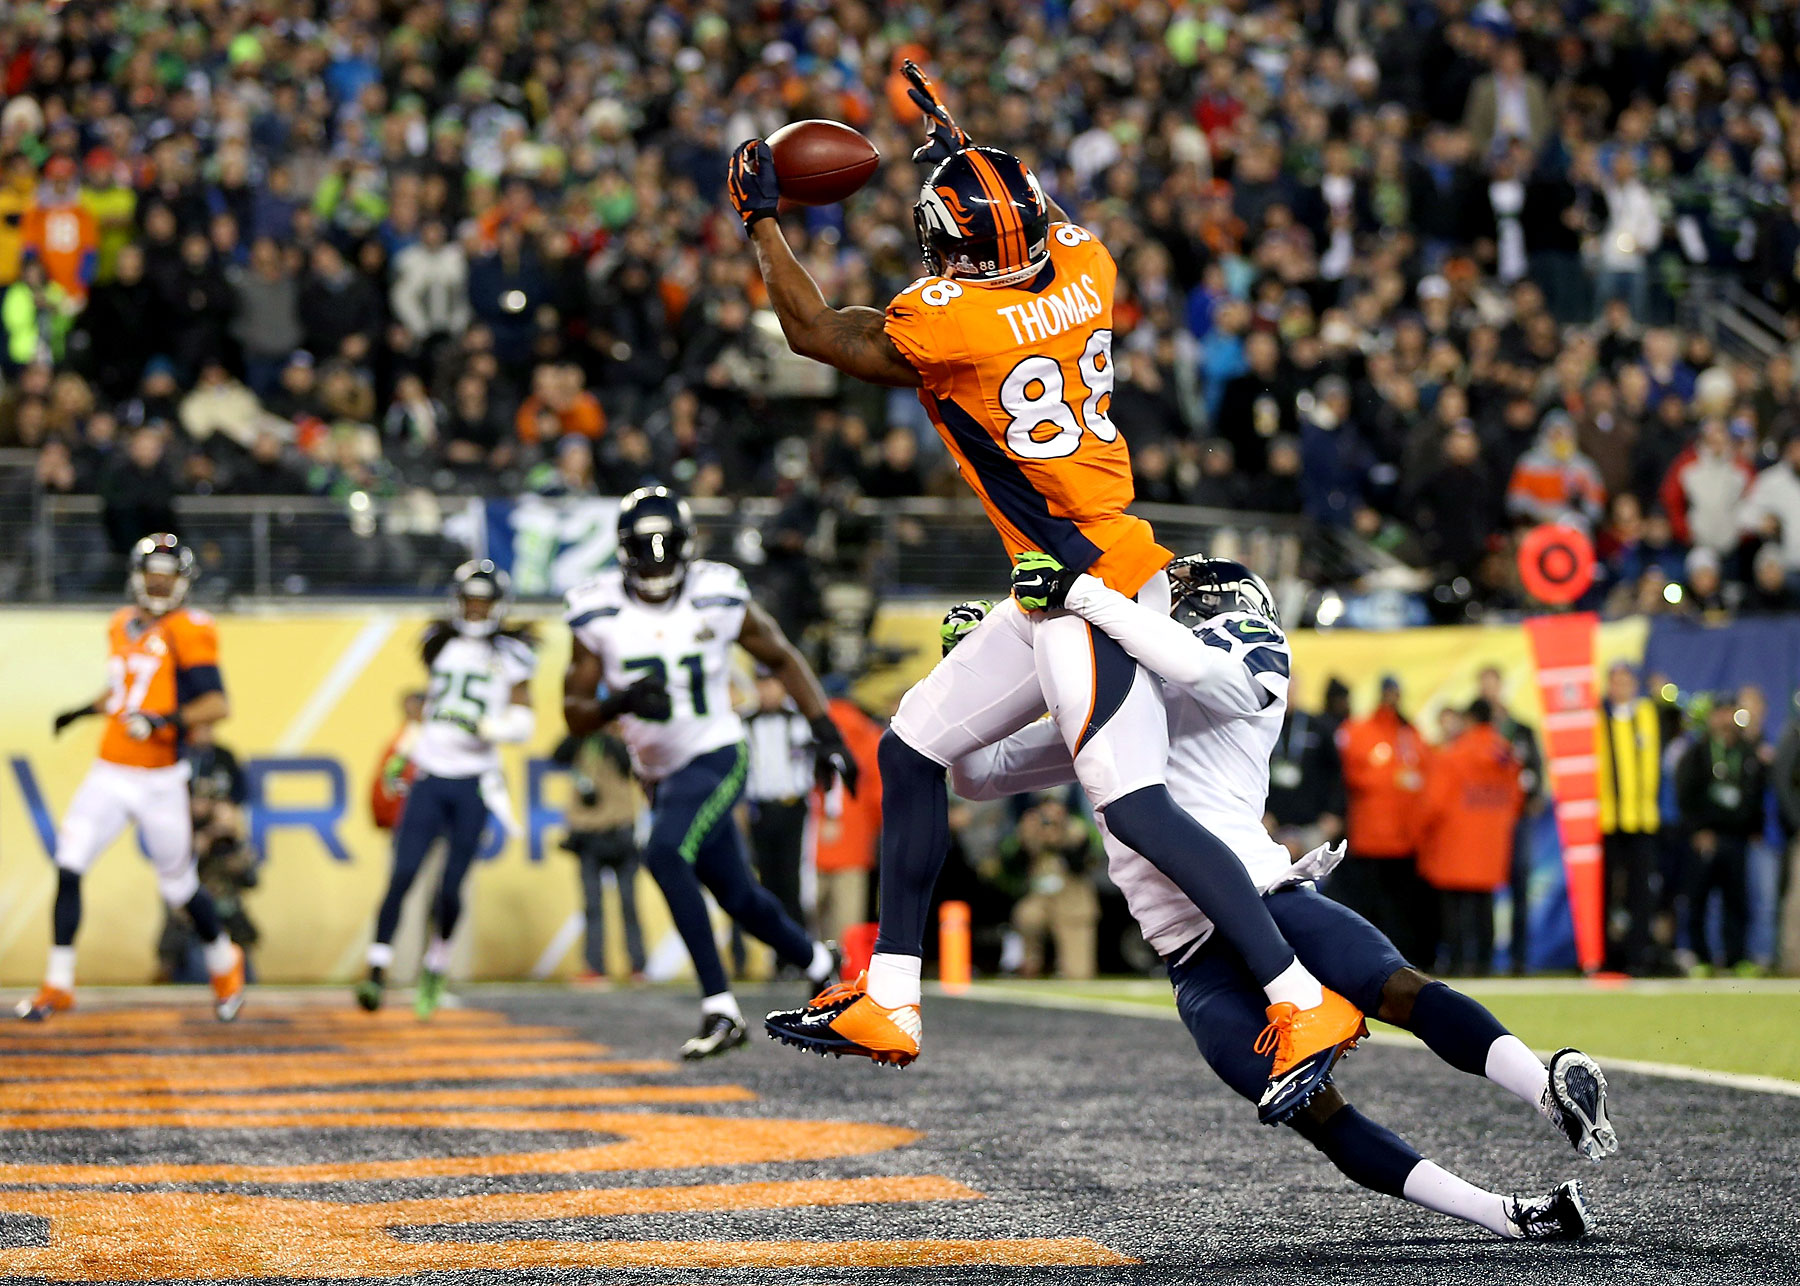 Wide receiver Demaryius Thomas of the Denver Broncos ran 14 yards to score a touchdown in the third quarter against cornerback Byron Maxwel of the Seattle Seahawks.